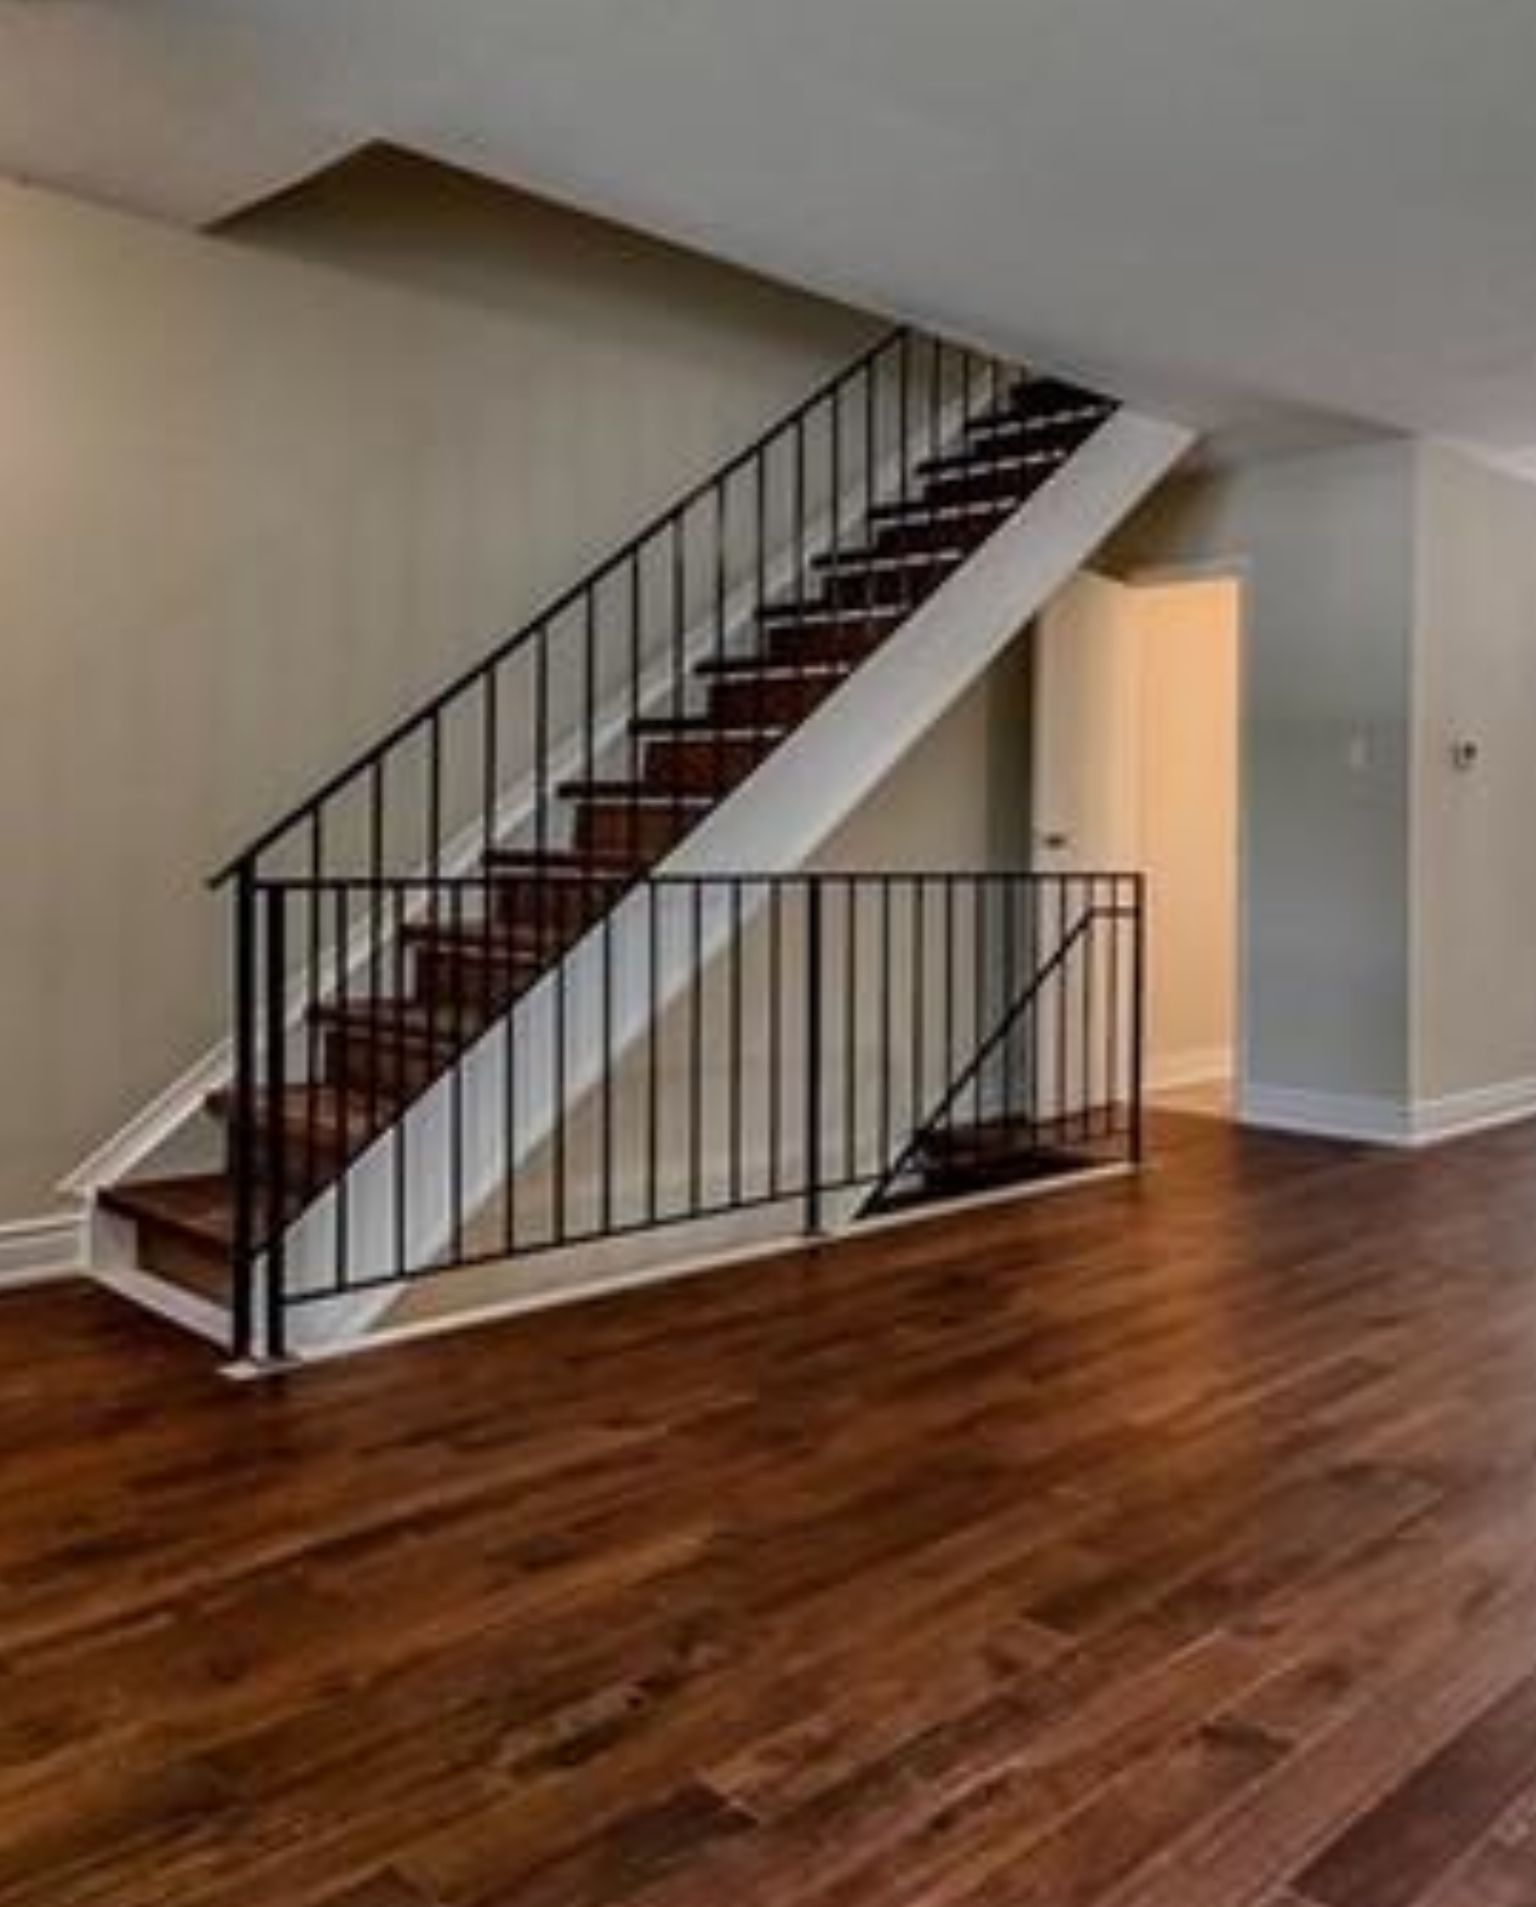 Best Pin By Lorena U On Cape Cod Center Stairs Remodel Ideas 400 x 300